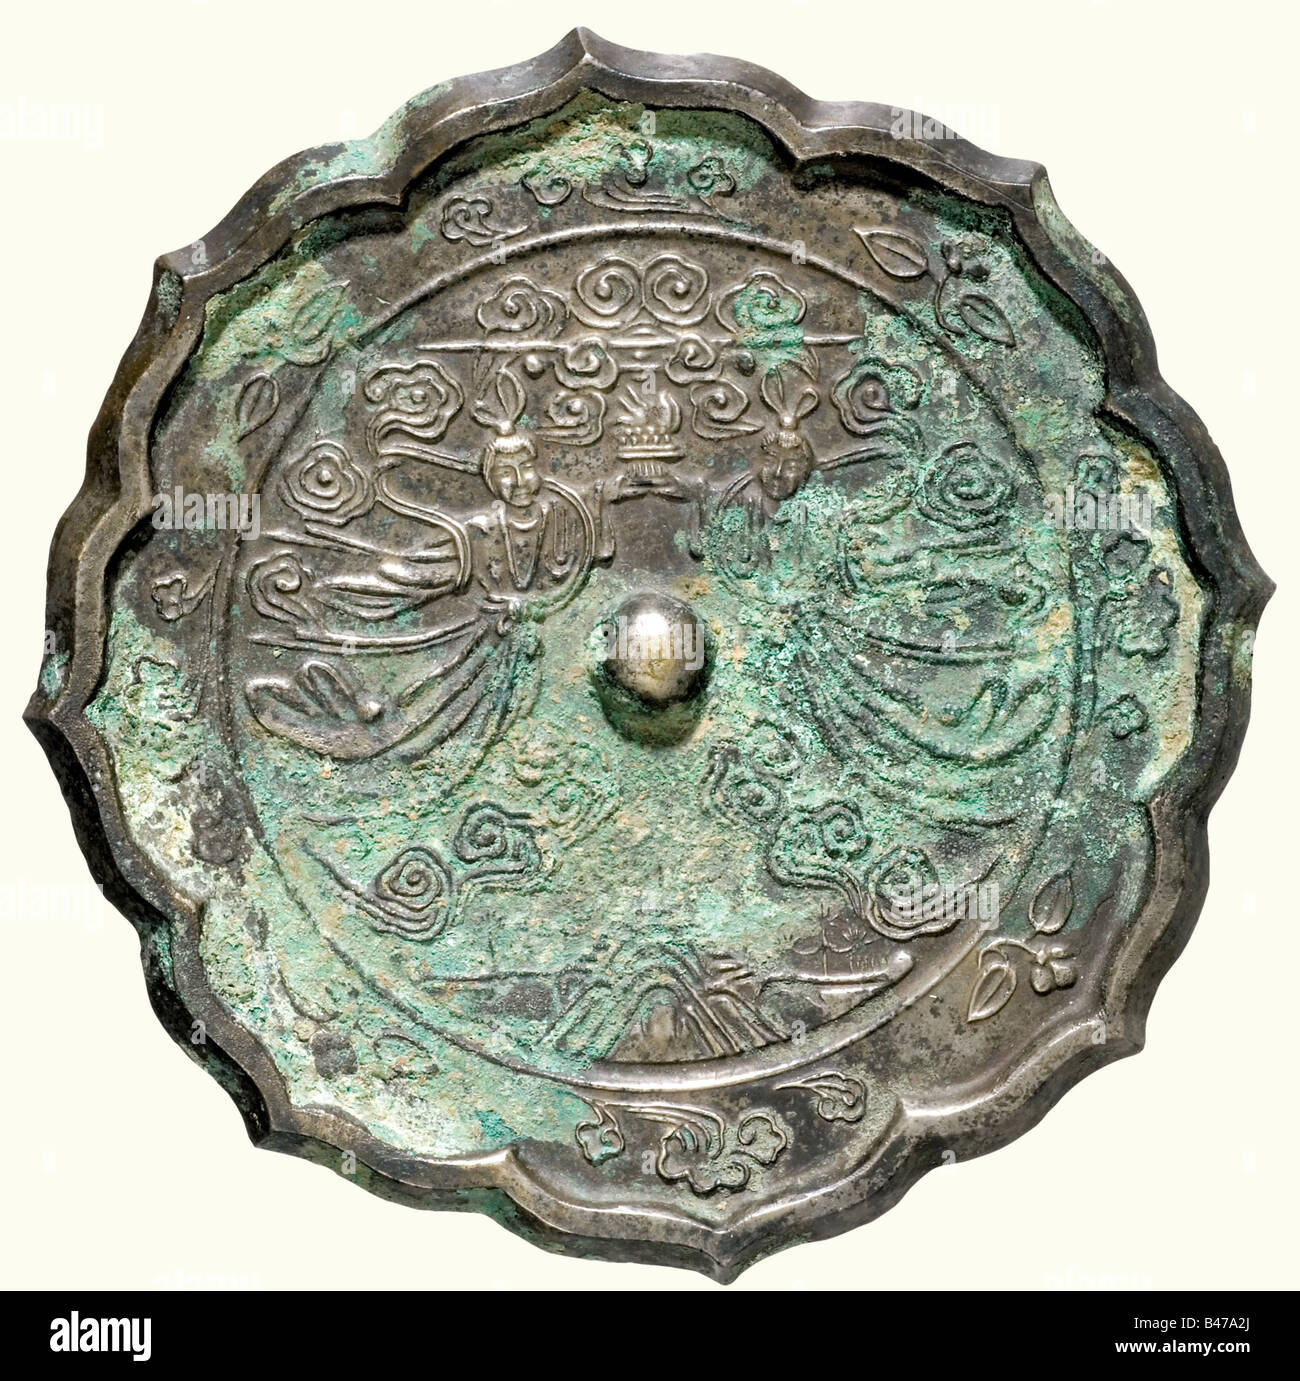 A bronze mirror, China, Tang Dynasty, 9th century A.D. Cast white bronze with a reinforced, palmate shaped rim and - Stock Image